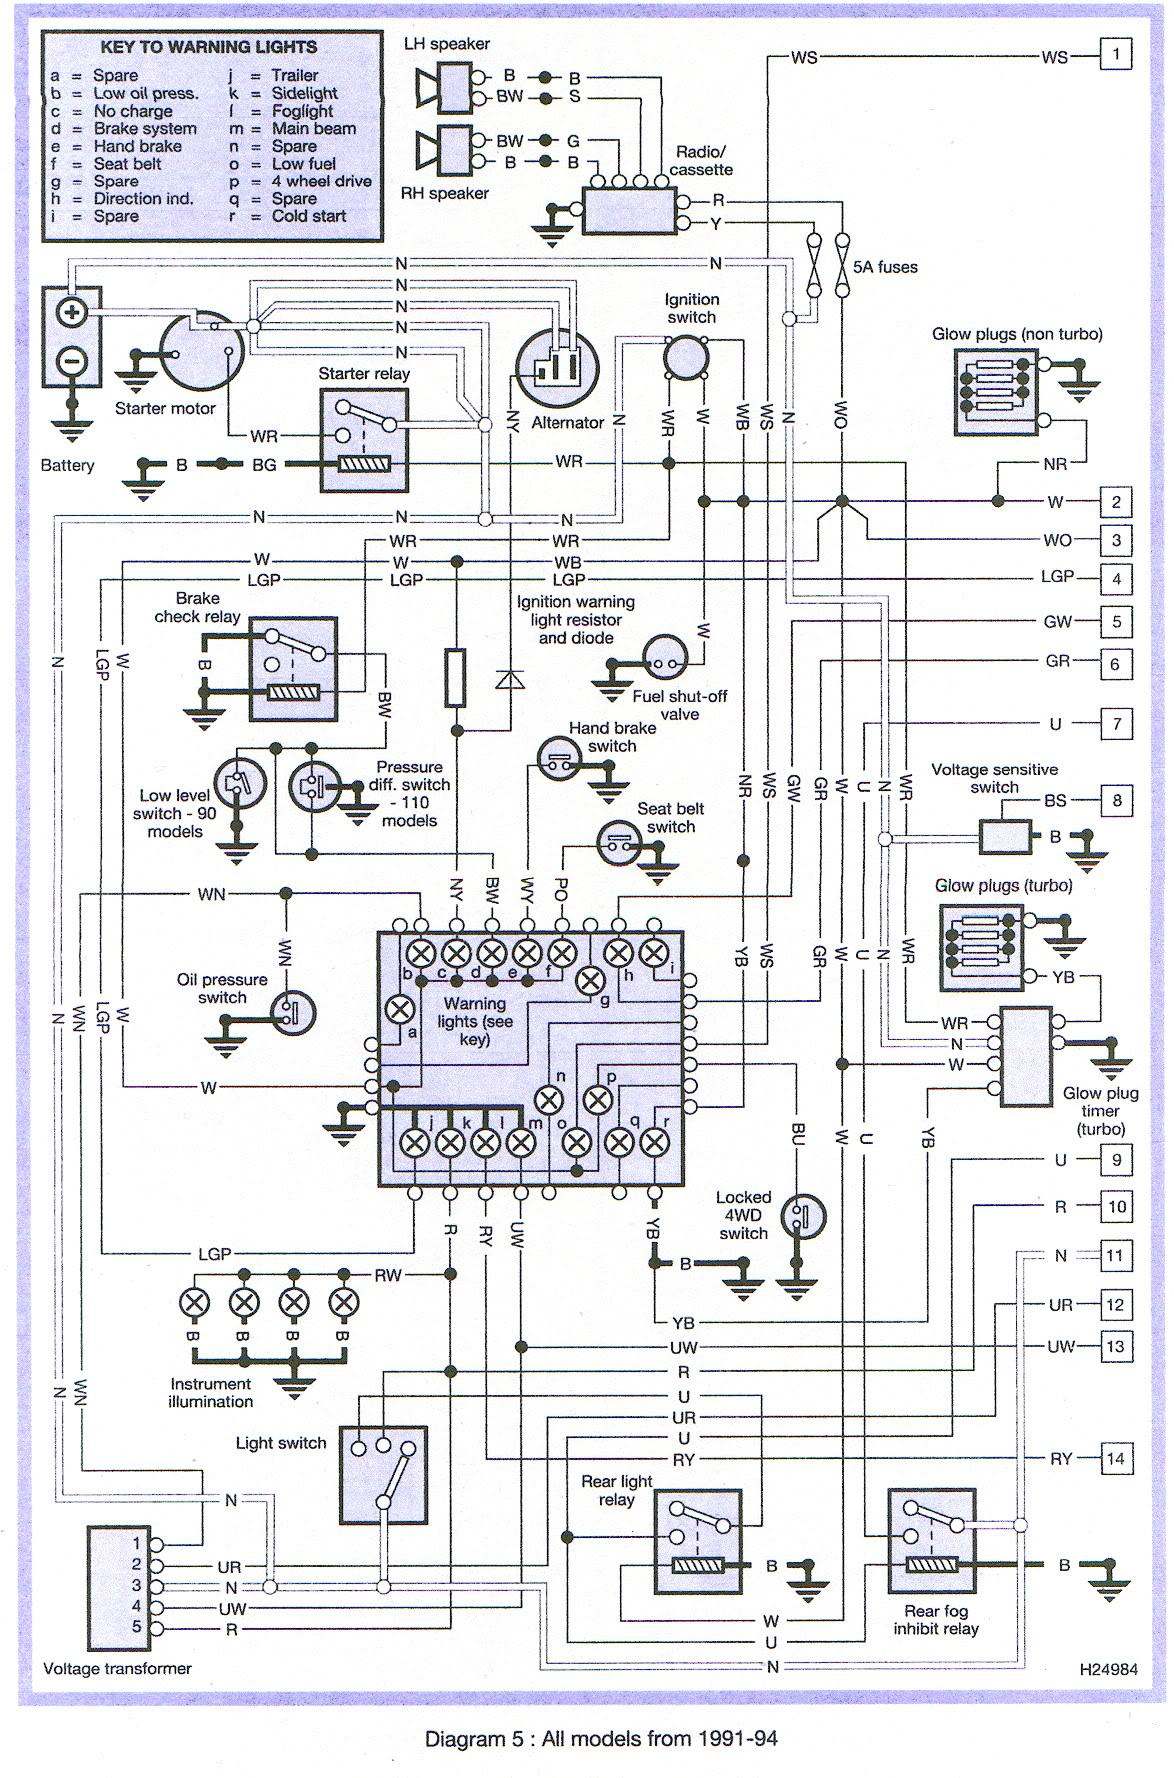 series 3 wiring diagram · defender2 net - view topic